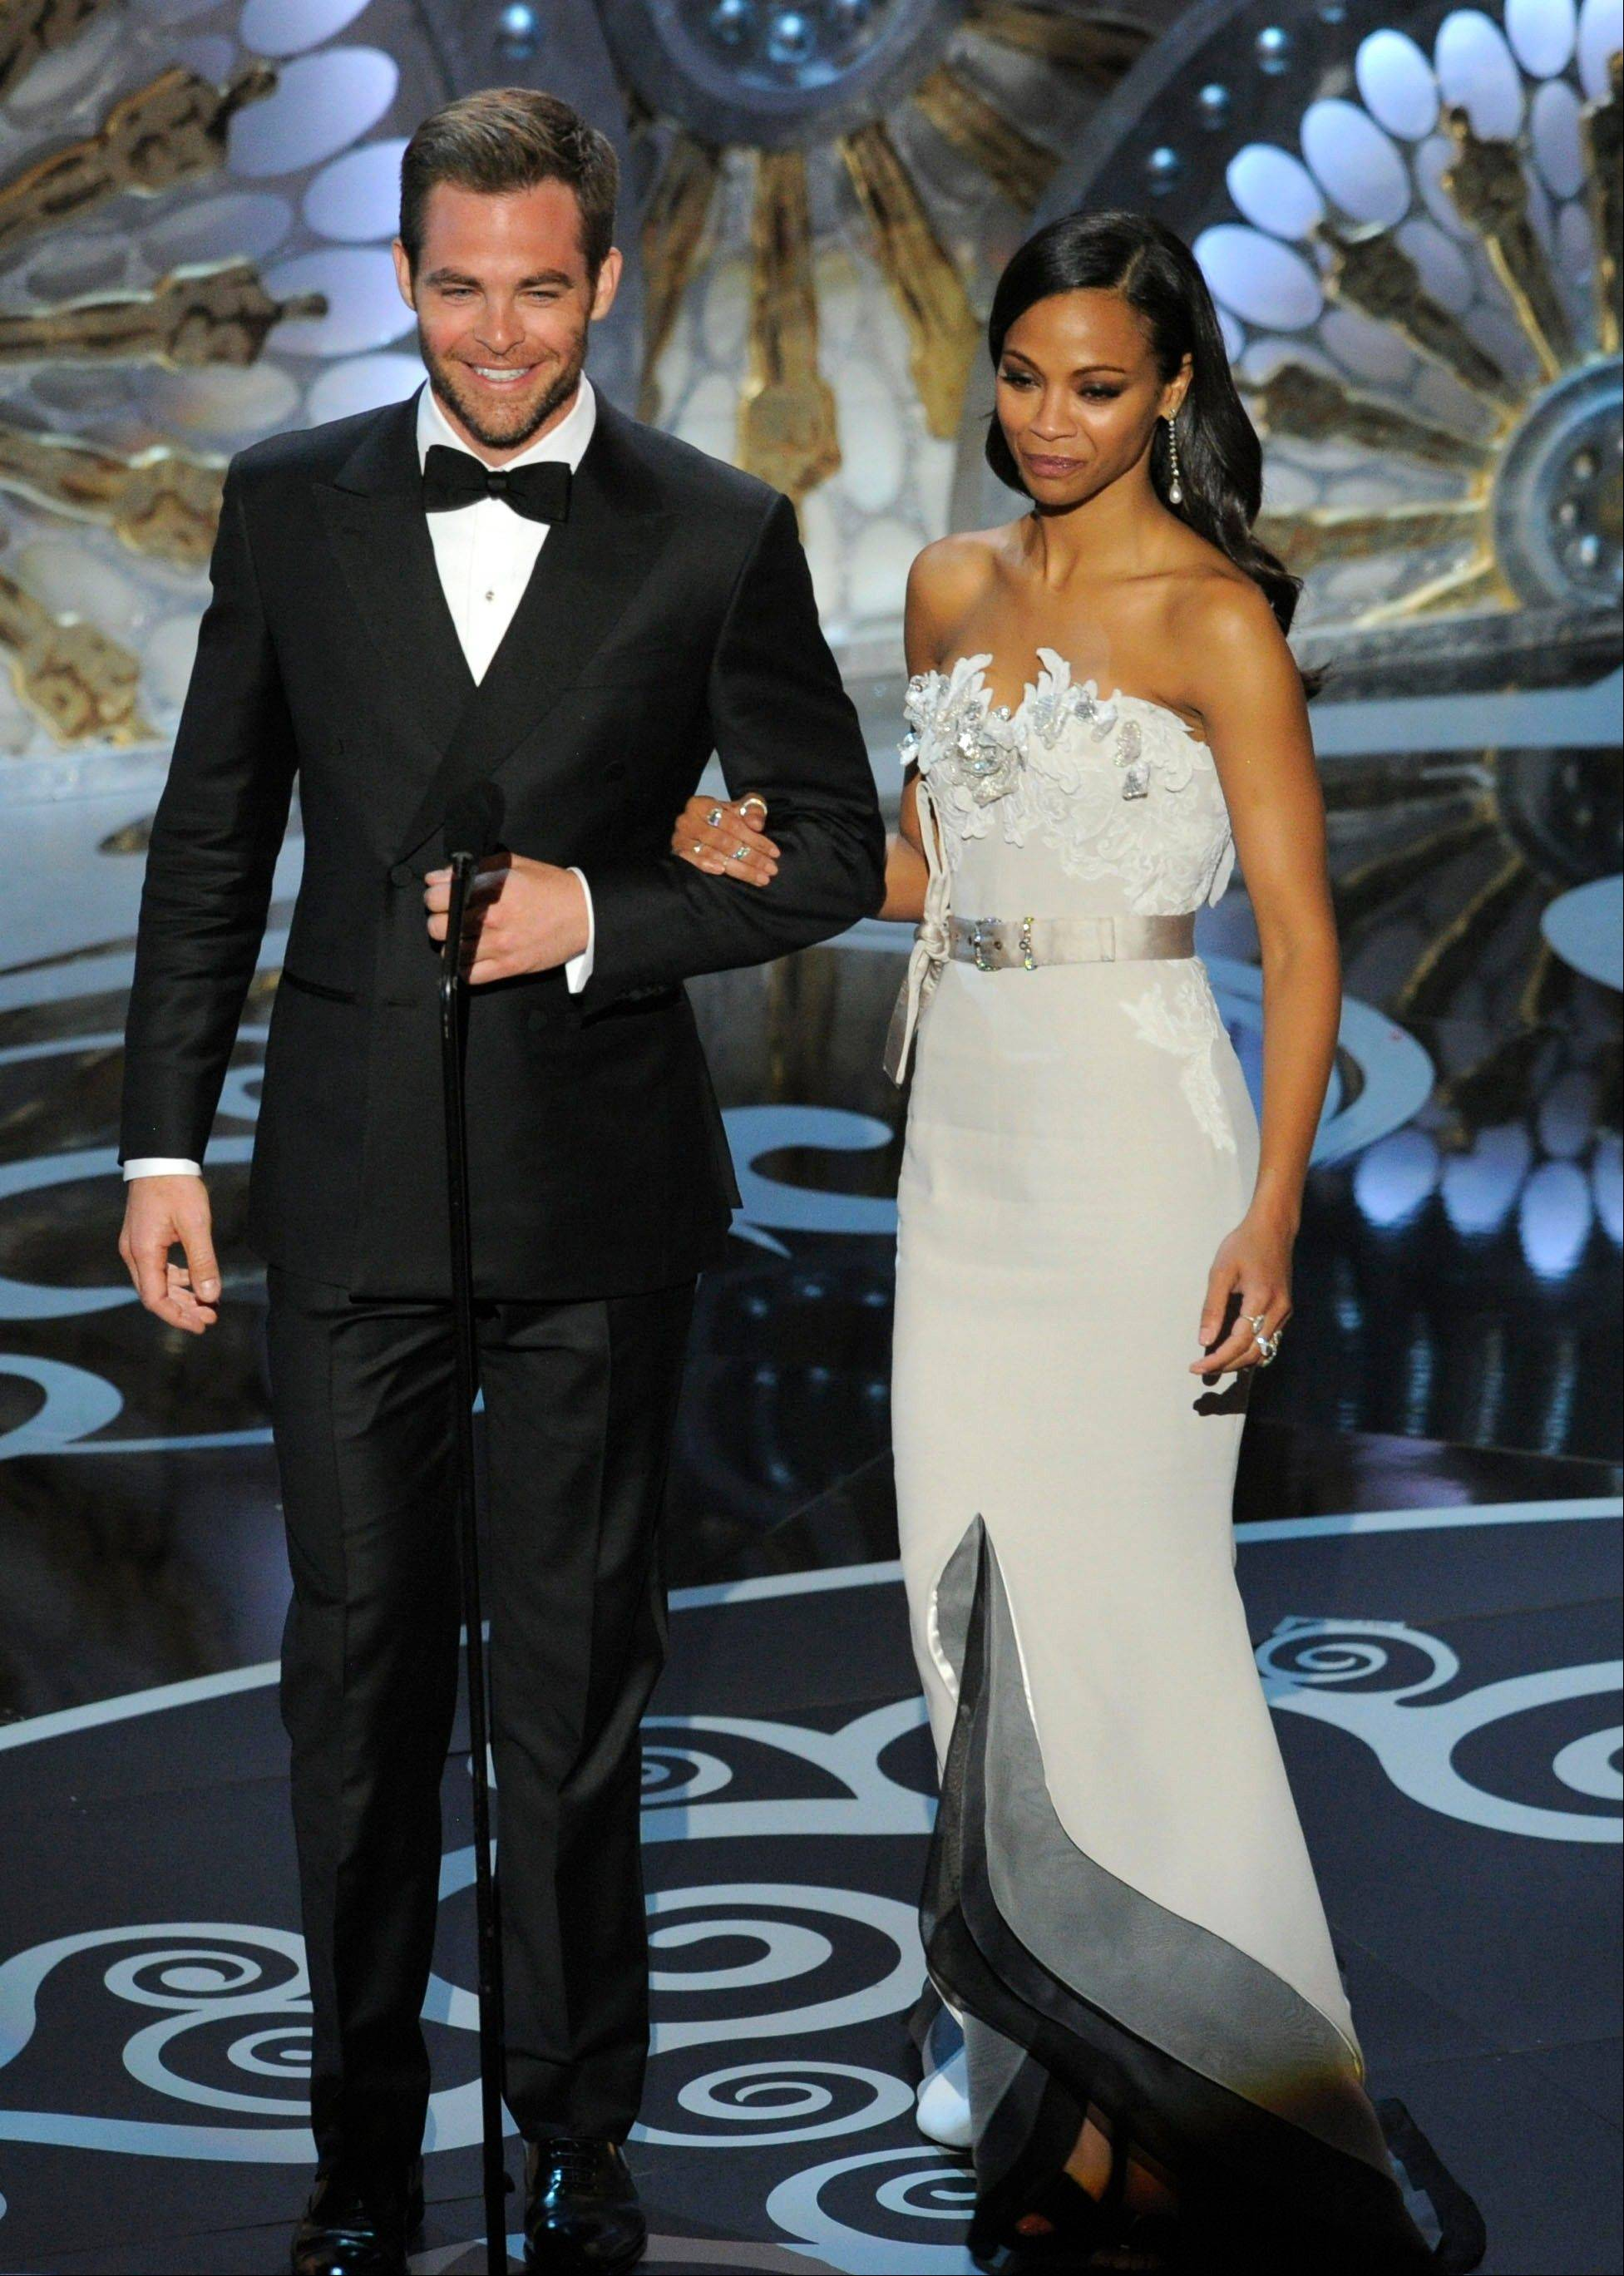 """Star Trek into Darkness"" co-stars Chris Pine and Zoe Saldana present an award Sunday at the Oscars."